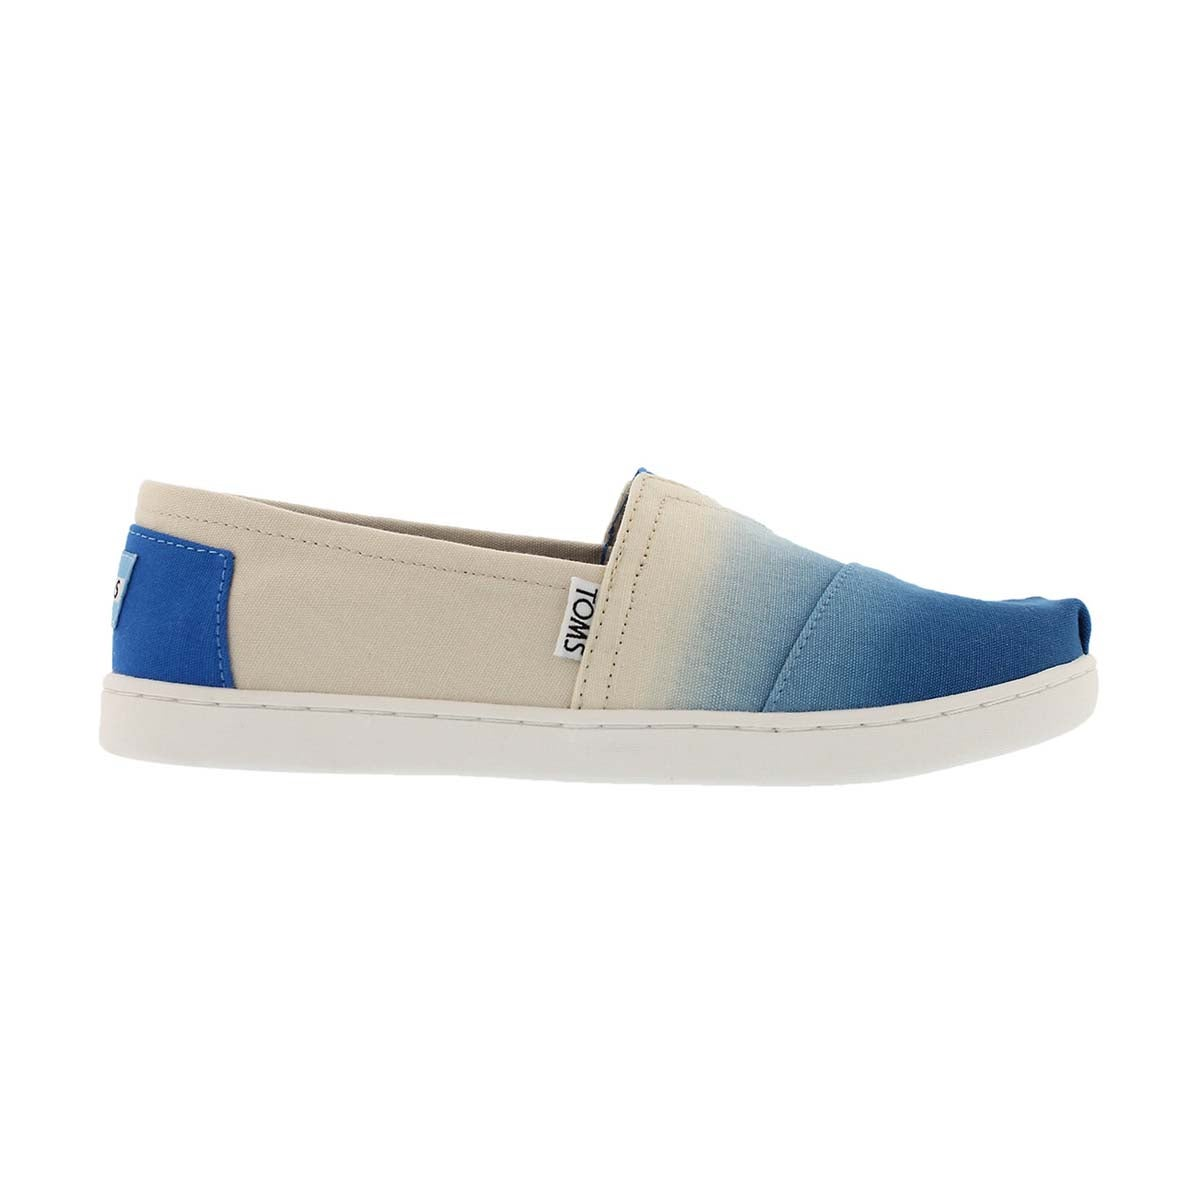 Grls Seasonal Classic cobalt loafer